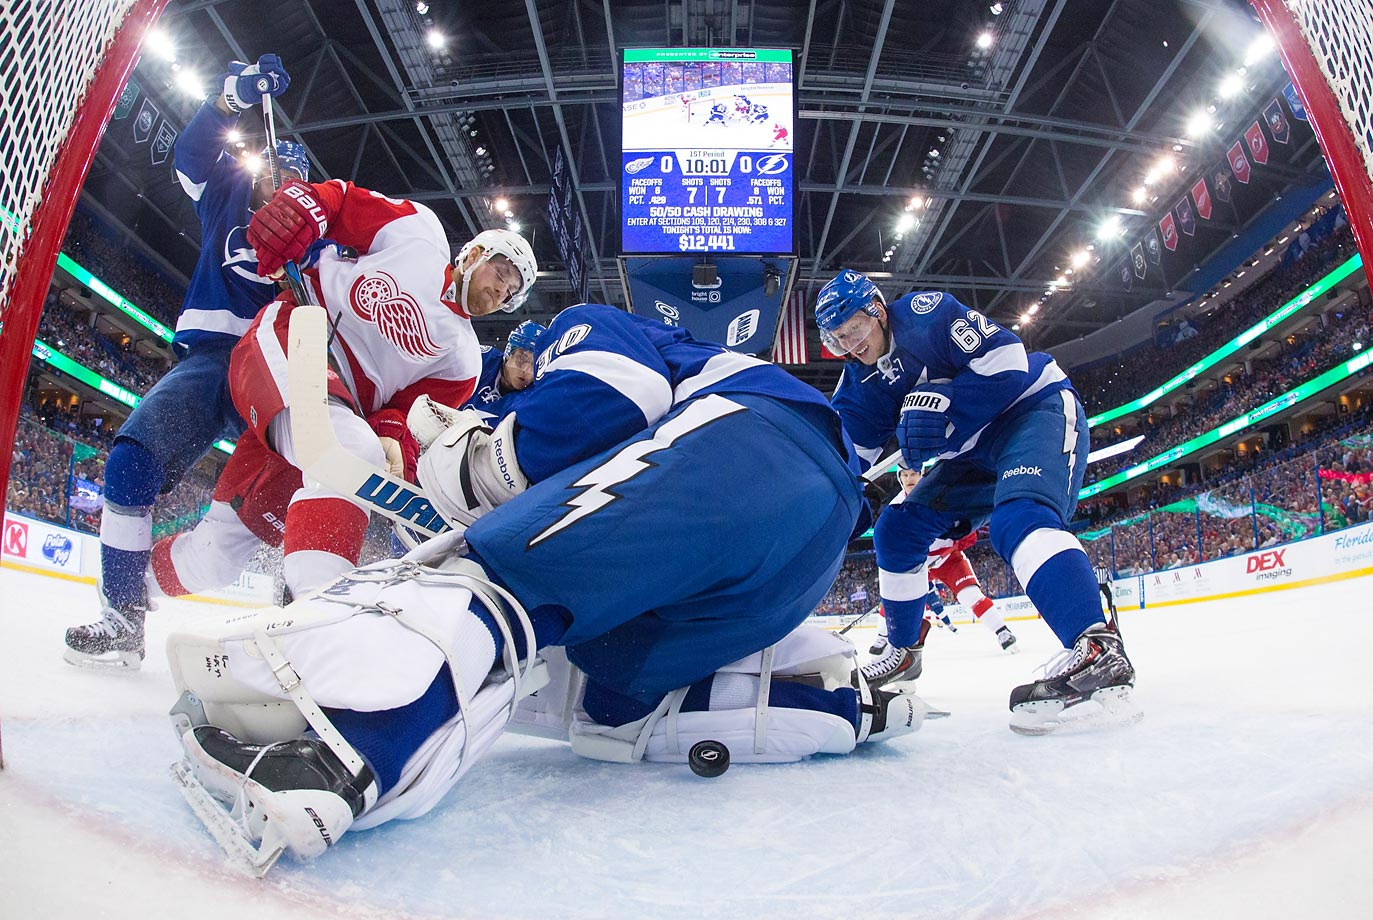 Goaile Ben Bishop of the Tampa Bay Lightning attempts to cover the puck as teammates Mark Barberio  and Andrej Sustr battle against Joakim Andersson of the Detroit Red Wings.